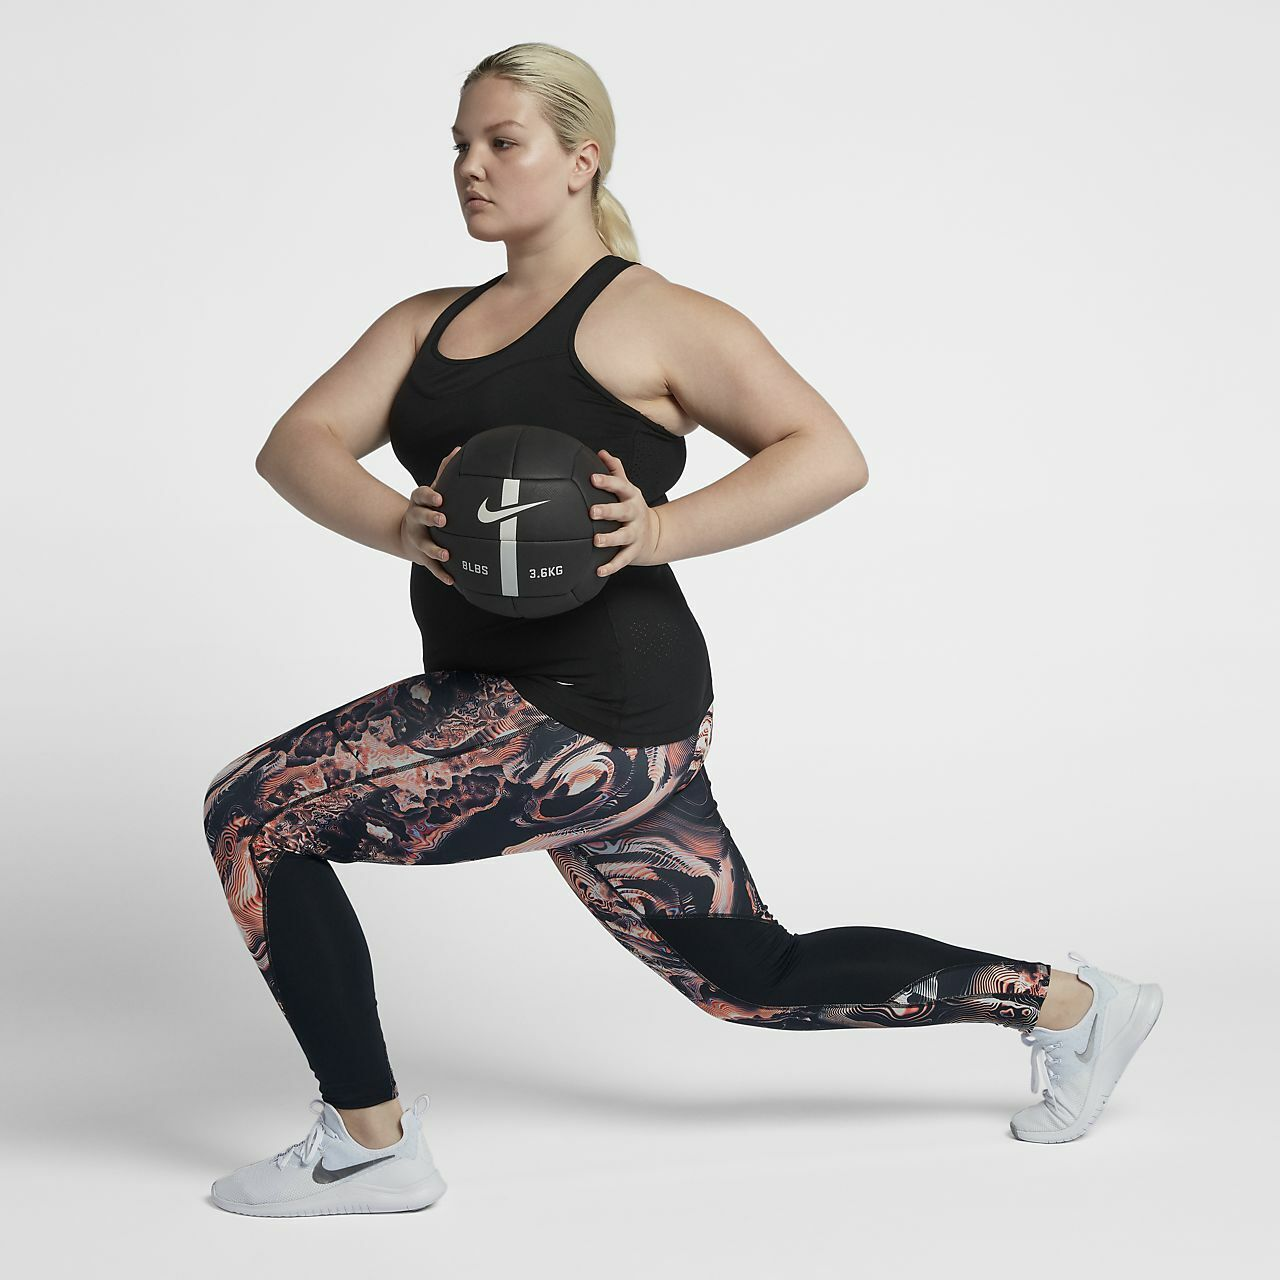 Fitness Outfit Damen Nike Test Vergleich +++ Fitness Outfit